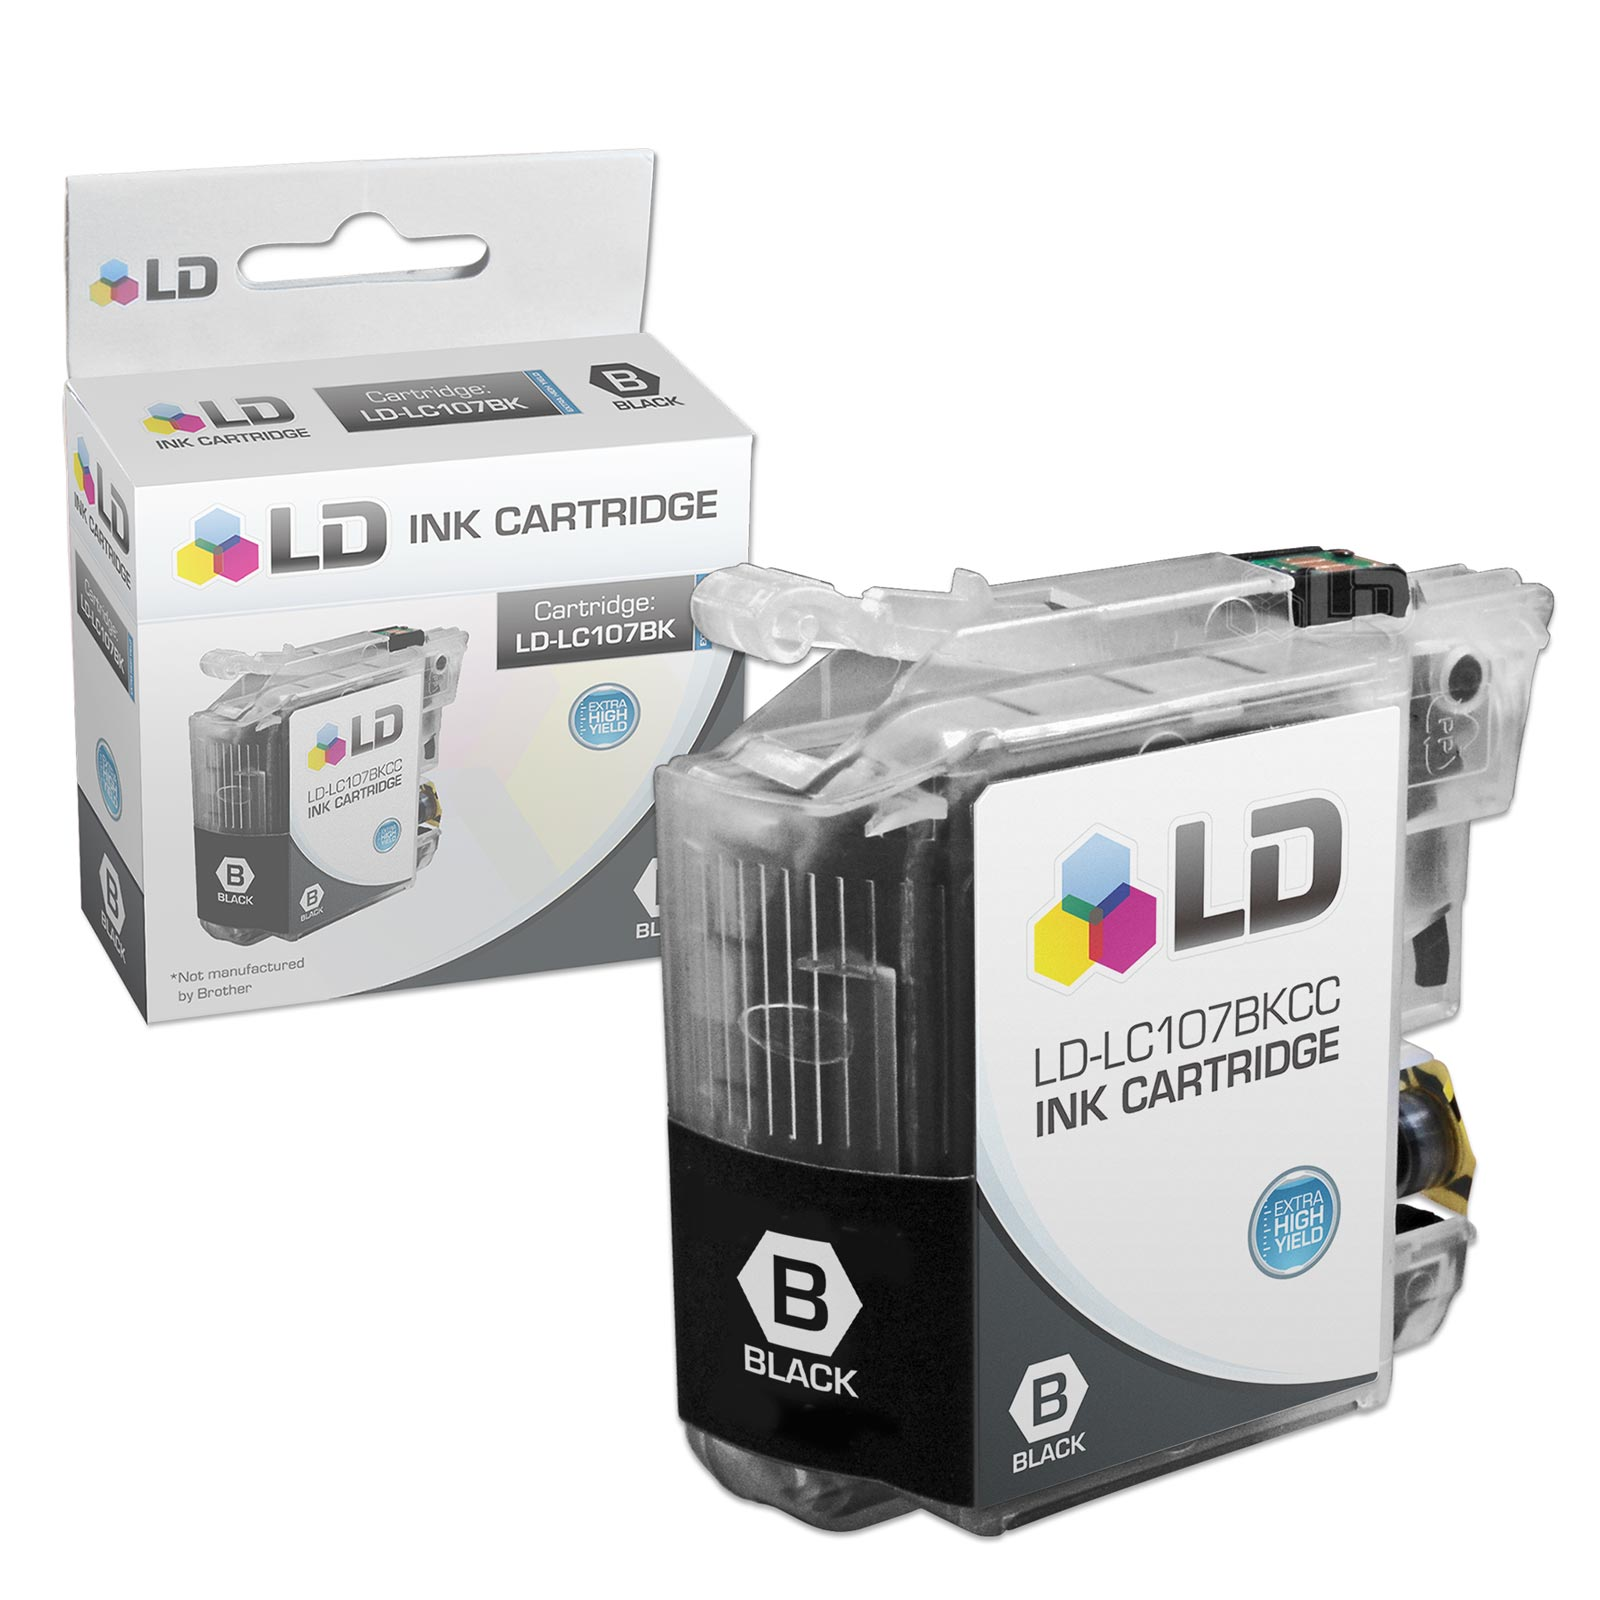 LD Brother Compatible LC107BK Super High Yield Black Ink Cartridge for use in MFC-J4310DW, MFC-J4410DW, MFC-J4510DW,